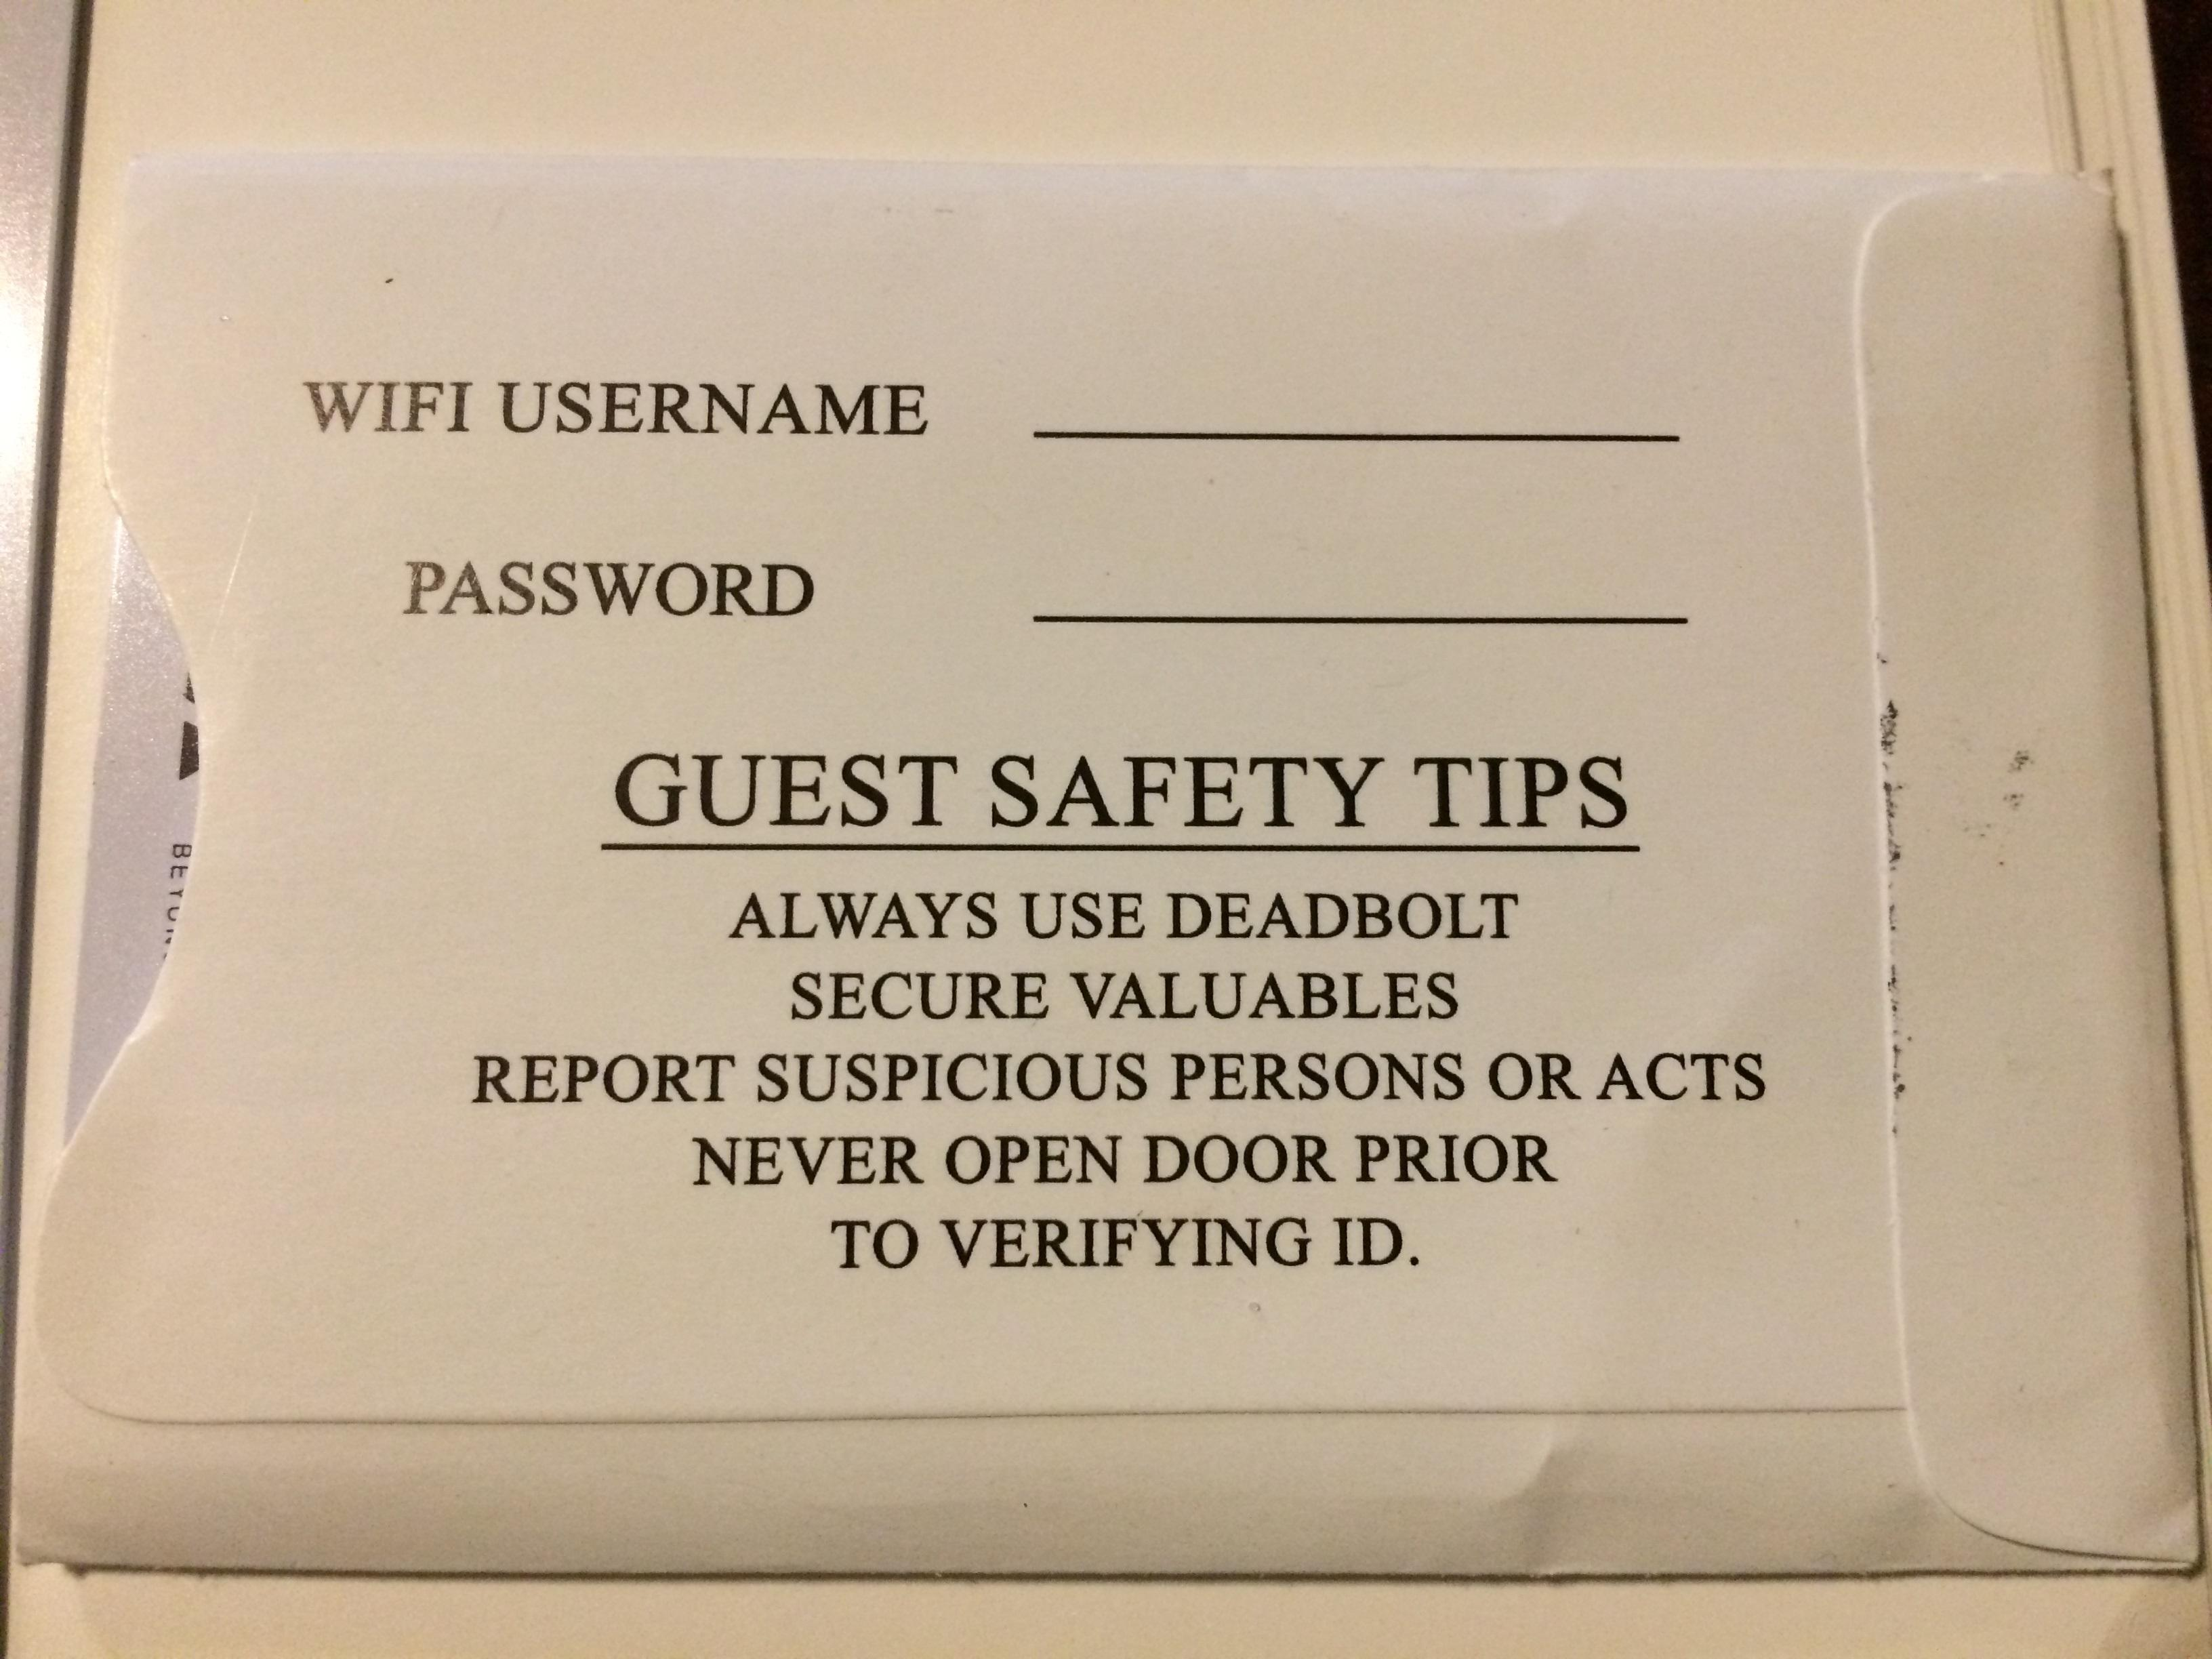 Safety warning on hotel key!